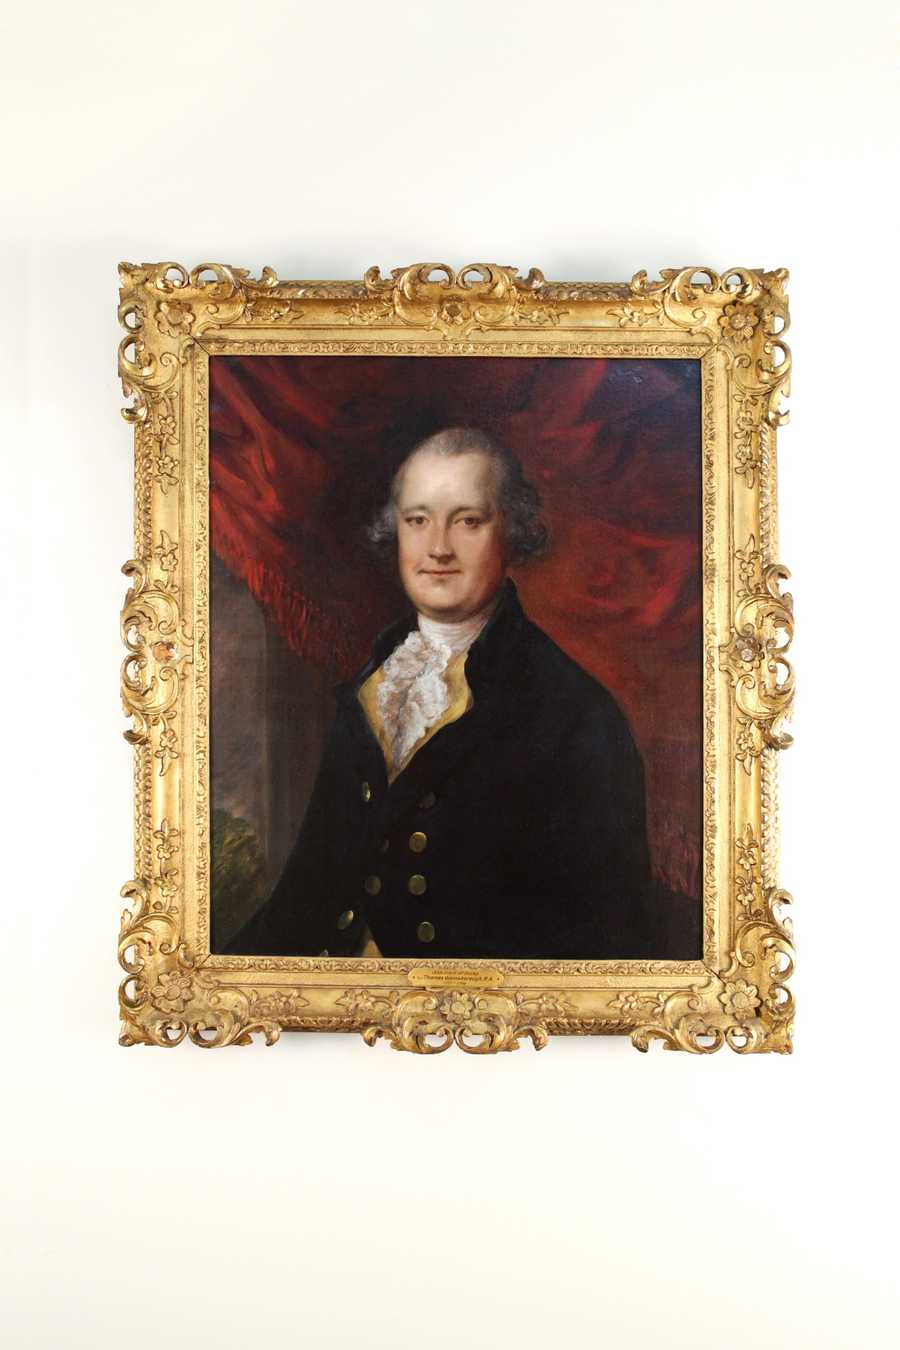 This is a painting of the 12th Earl of Derby by Gainsborough Dupont, nephew of renowned artist Thomas Gainsborough. In 1780, the Earl founded England's Epsom Derby, namesake of the Kentucky Derby.